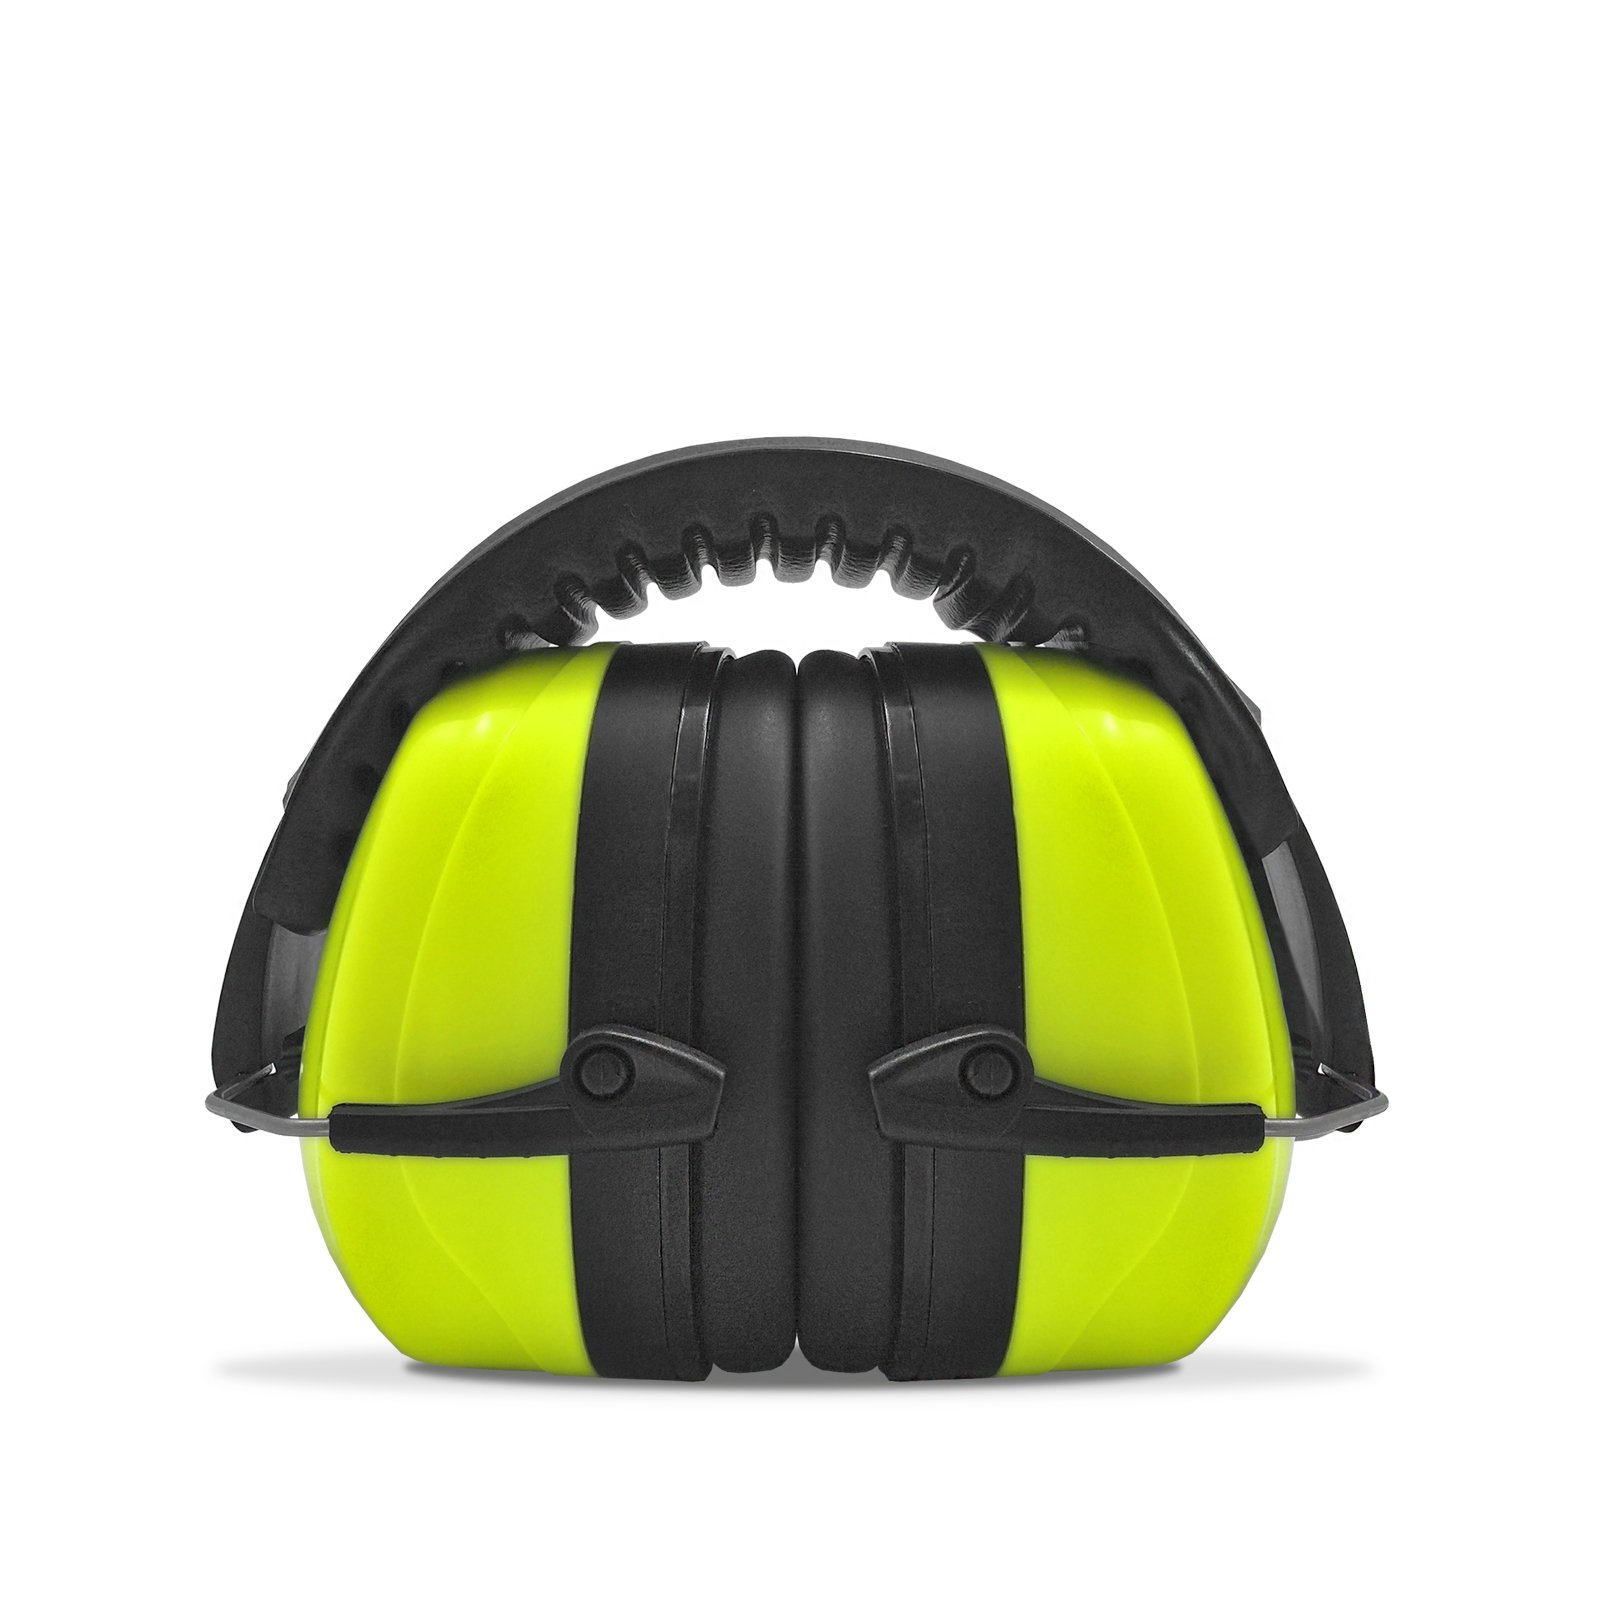 JORESTECH Protection Ear Muffs Construction Shooting Noise Reduction Safety Hunting Sports (Green)